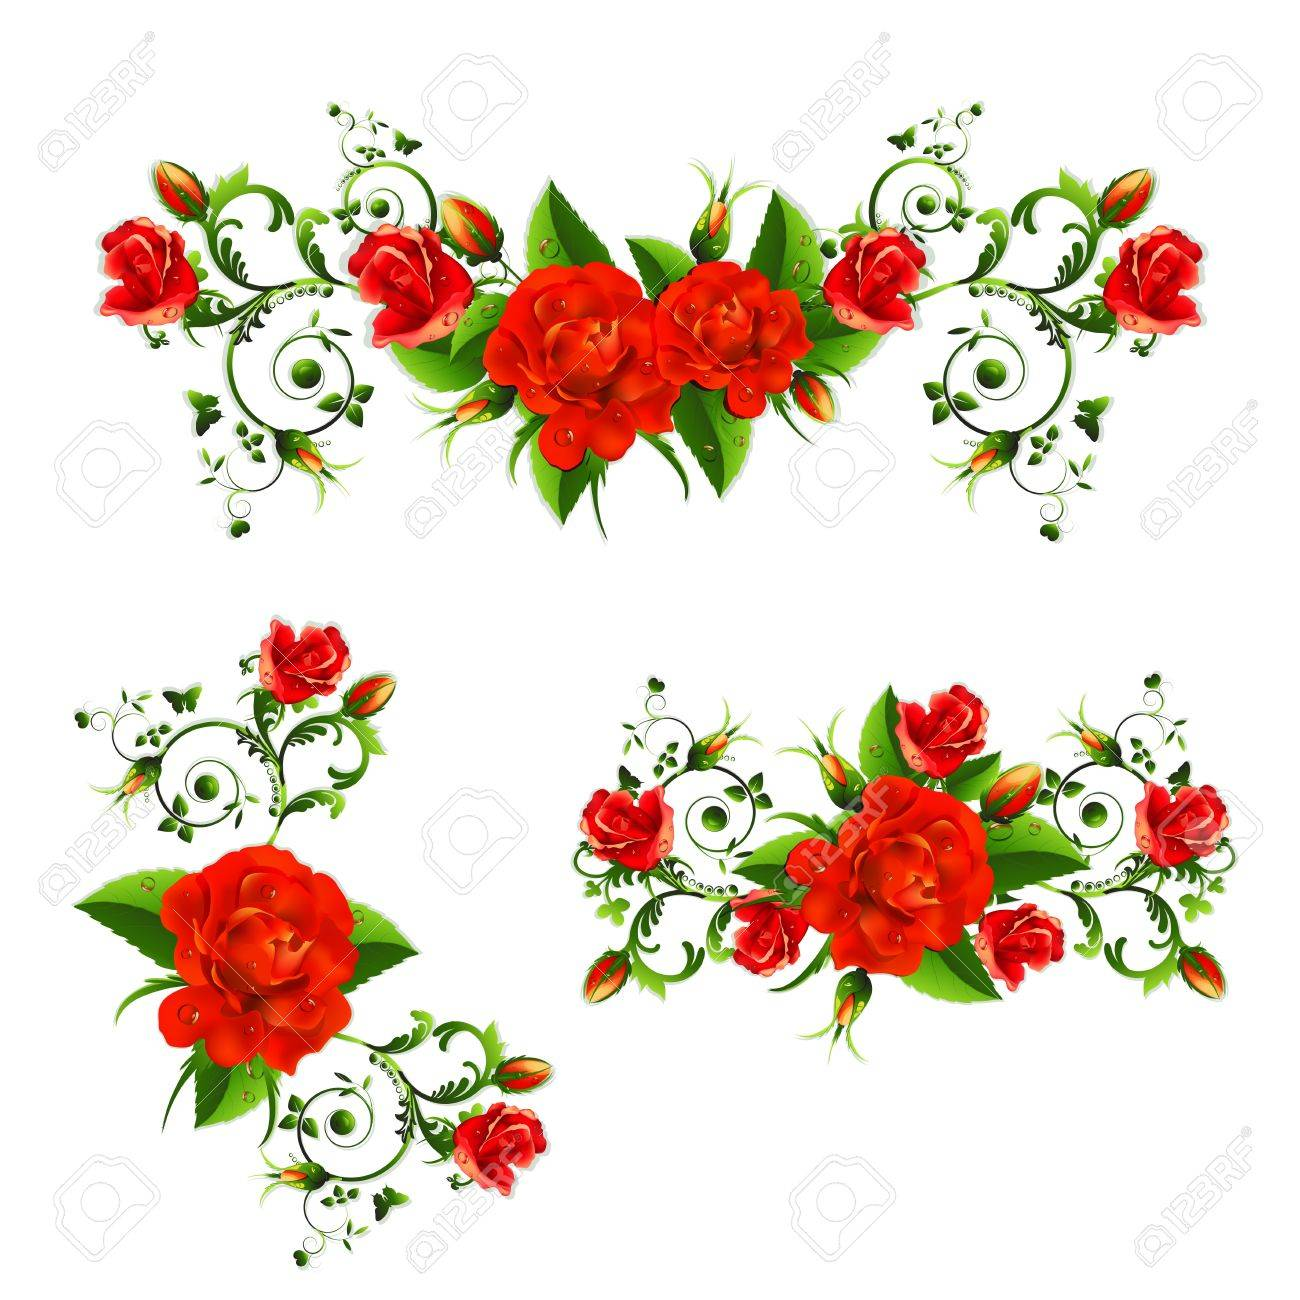 Background with red roses Stock Vector - 20059231